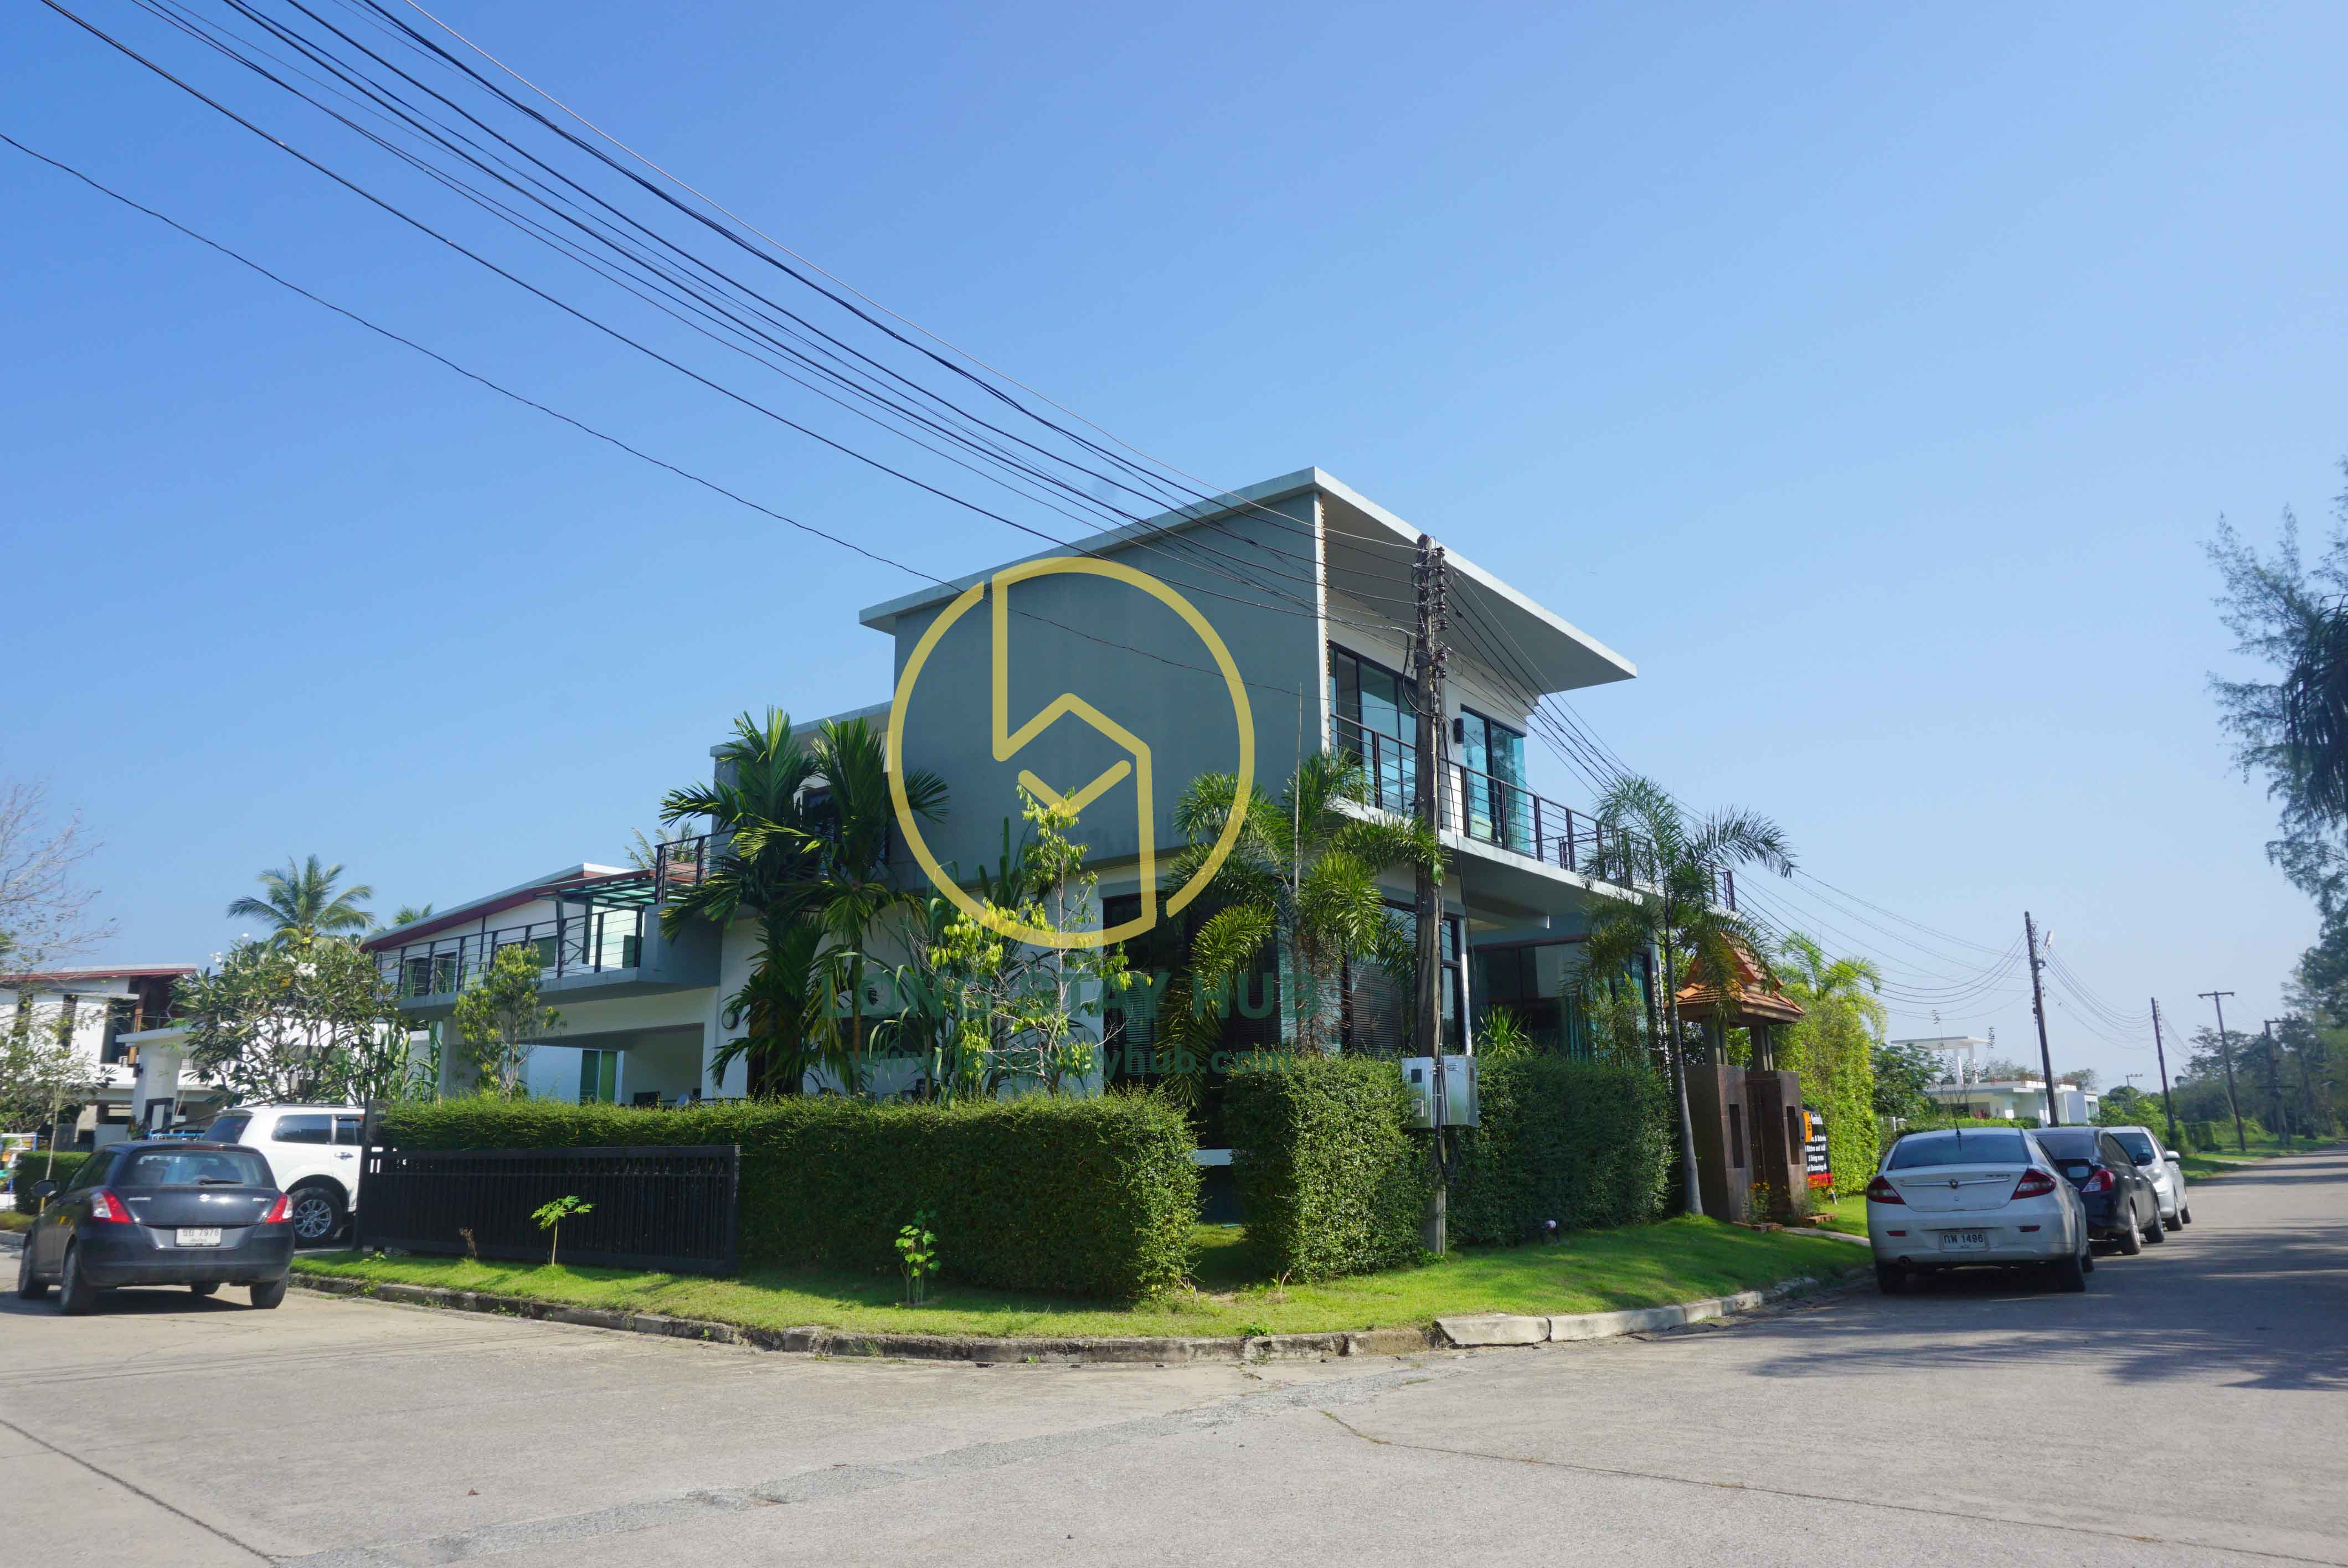 [Rented]Beautiful house with opened wide terrace and pool@Summit Green Valley for rent.